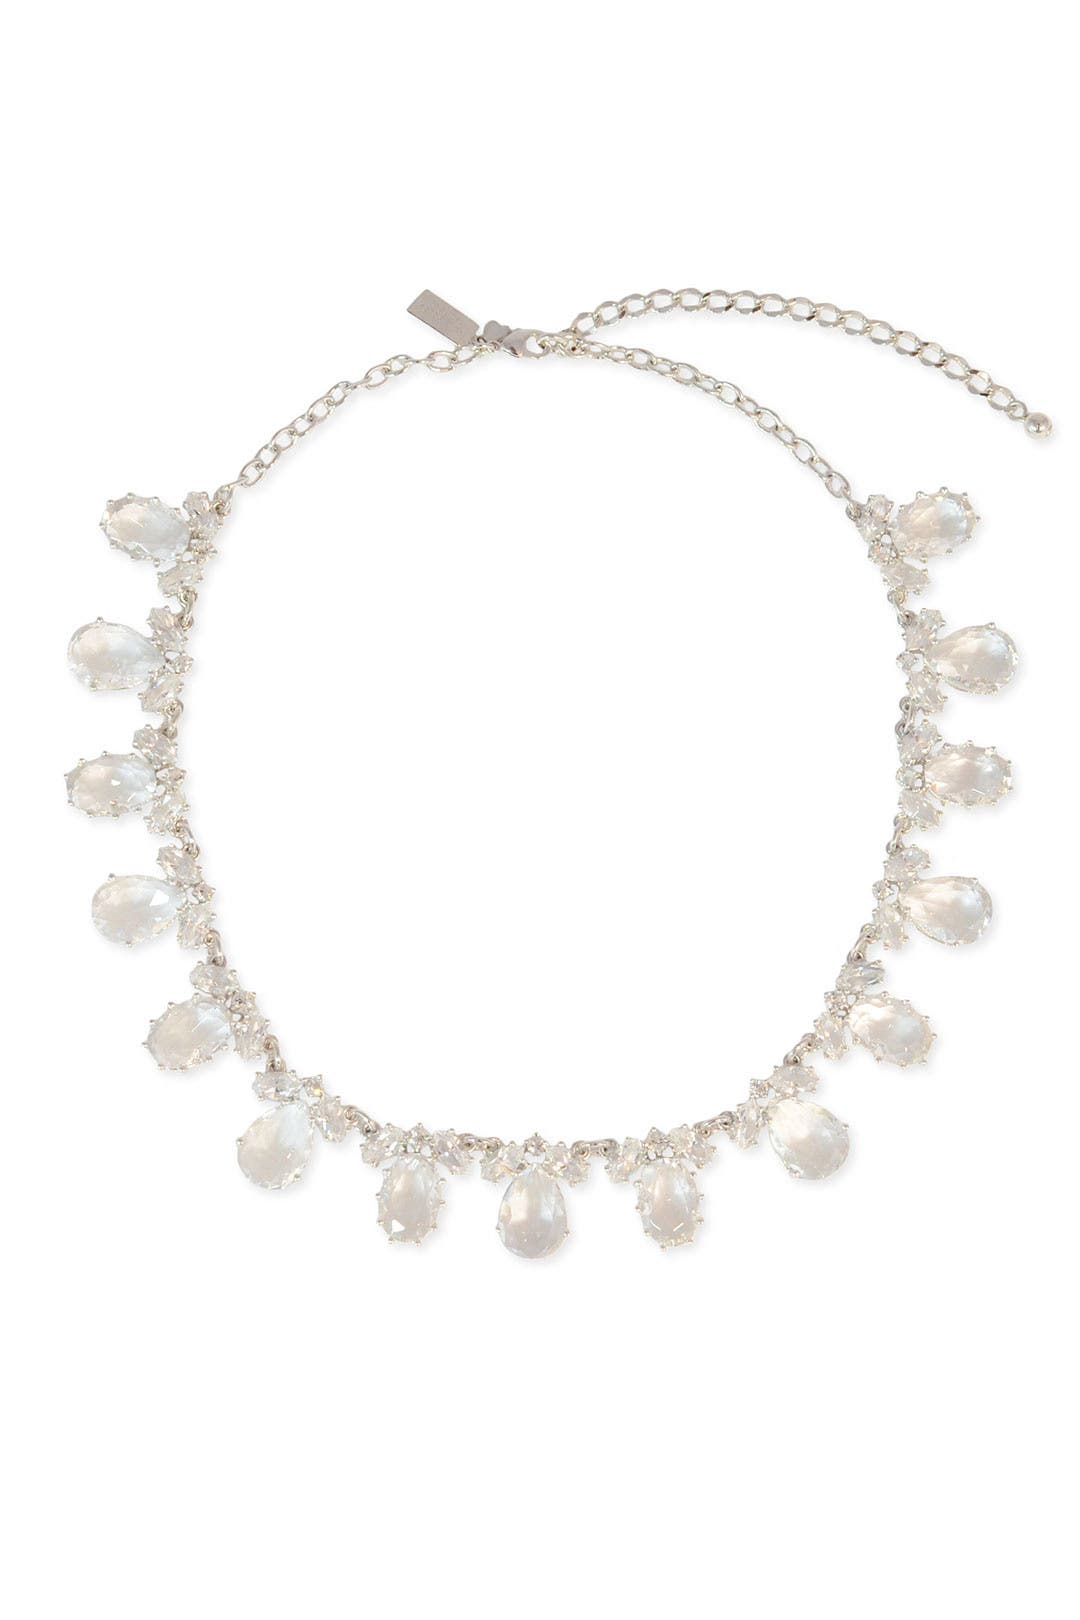 Age of Innocence Necklace by kate spade new york accessories